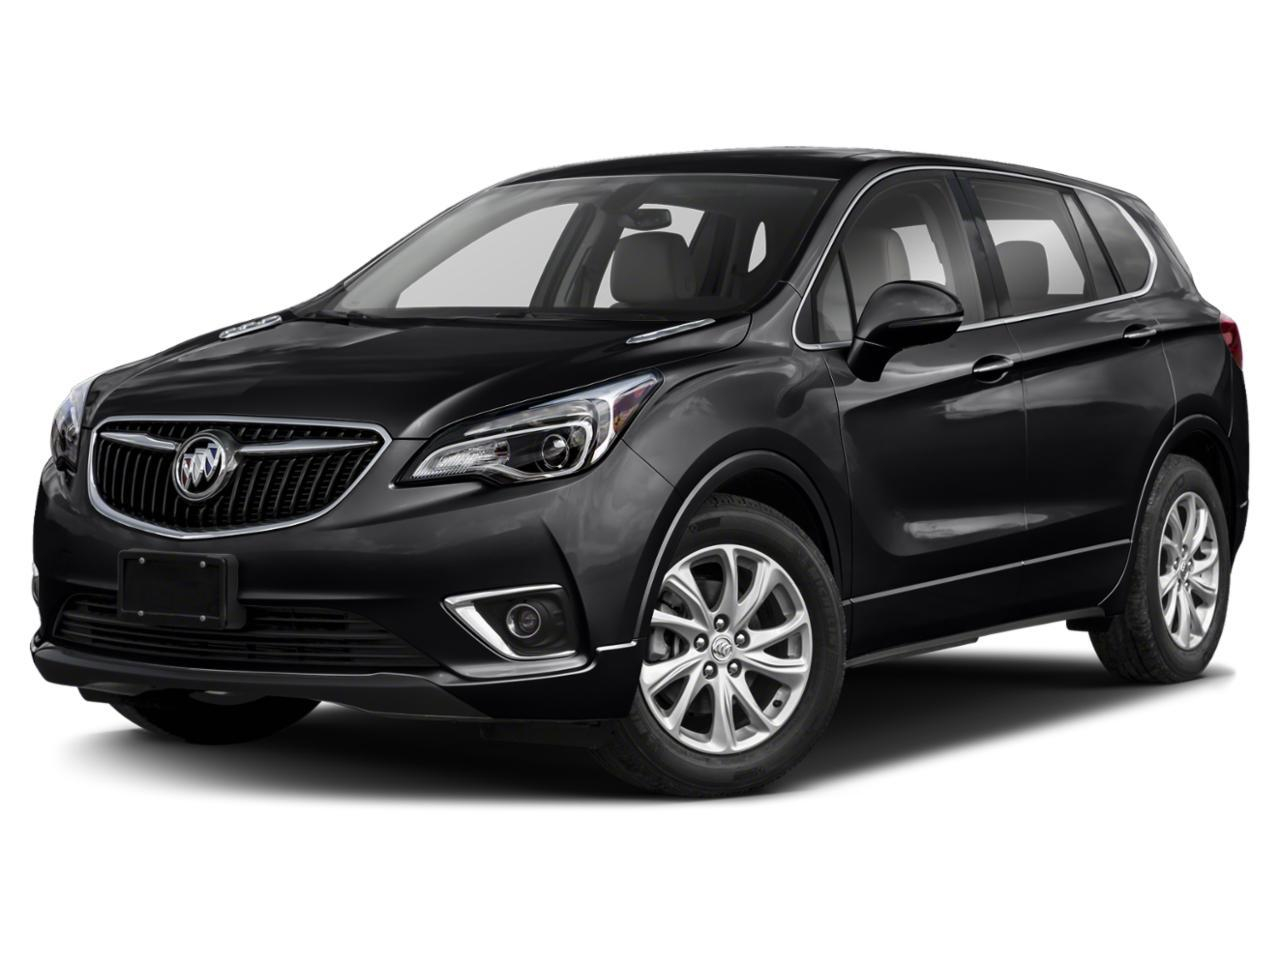 New 2020 Buick Envision For Sale At Griffin Buick Gmc New 2022 Buick Envision Owners Manual, Options, Oil Change